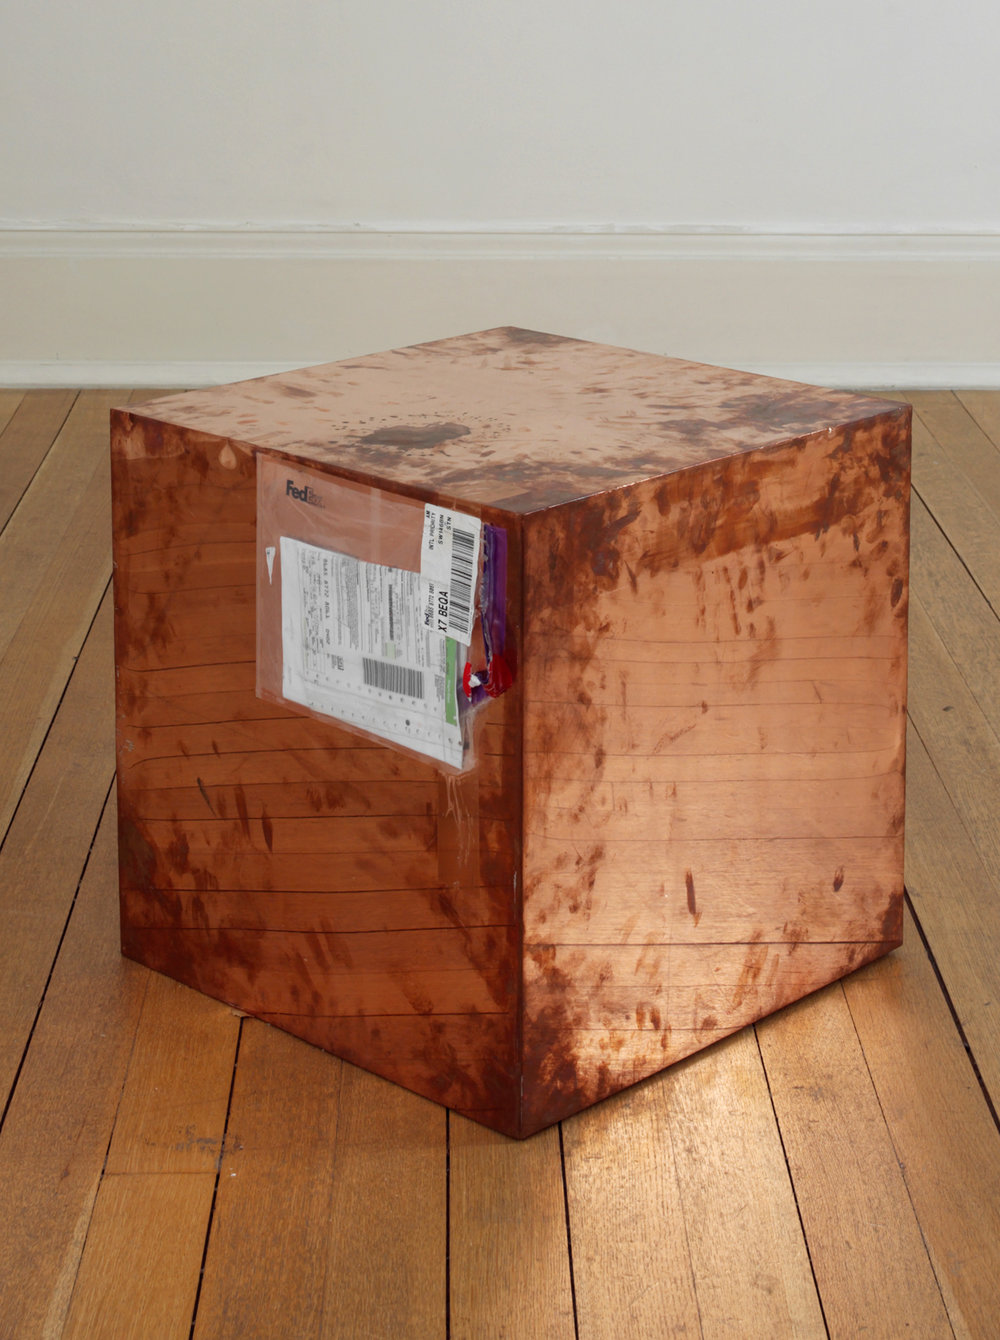 FedEx® Large Kraft Box  © 2005 FEDEX 330508 REV 10/05 SSCC, International Priority, Los Angeles–London trk#868587728061, October 2–5, 2009, International Priority, London–Zurich trk#863822956490, November 26–December 2, 2009    2009–   Polished copper, accrued FedEx shipping and tracking labels  20 x 20 x 20 inches   Production Stills, 2009